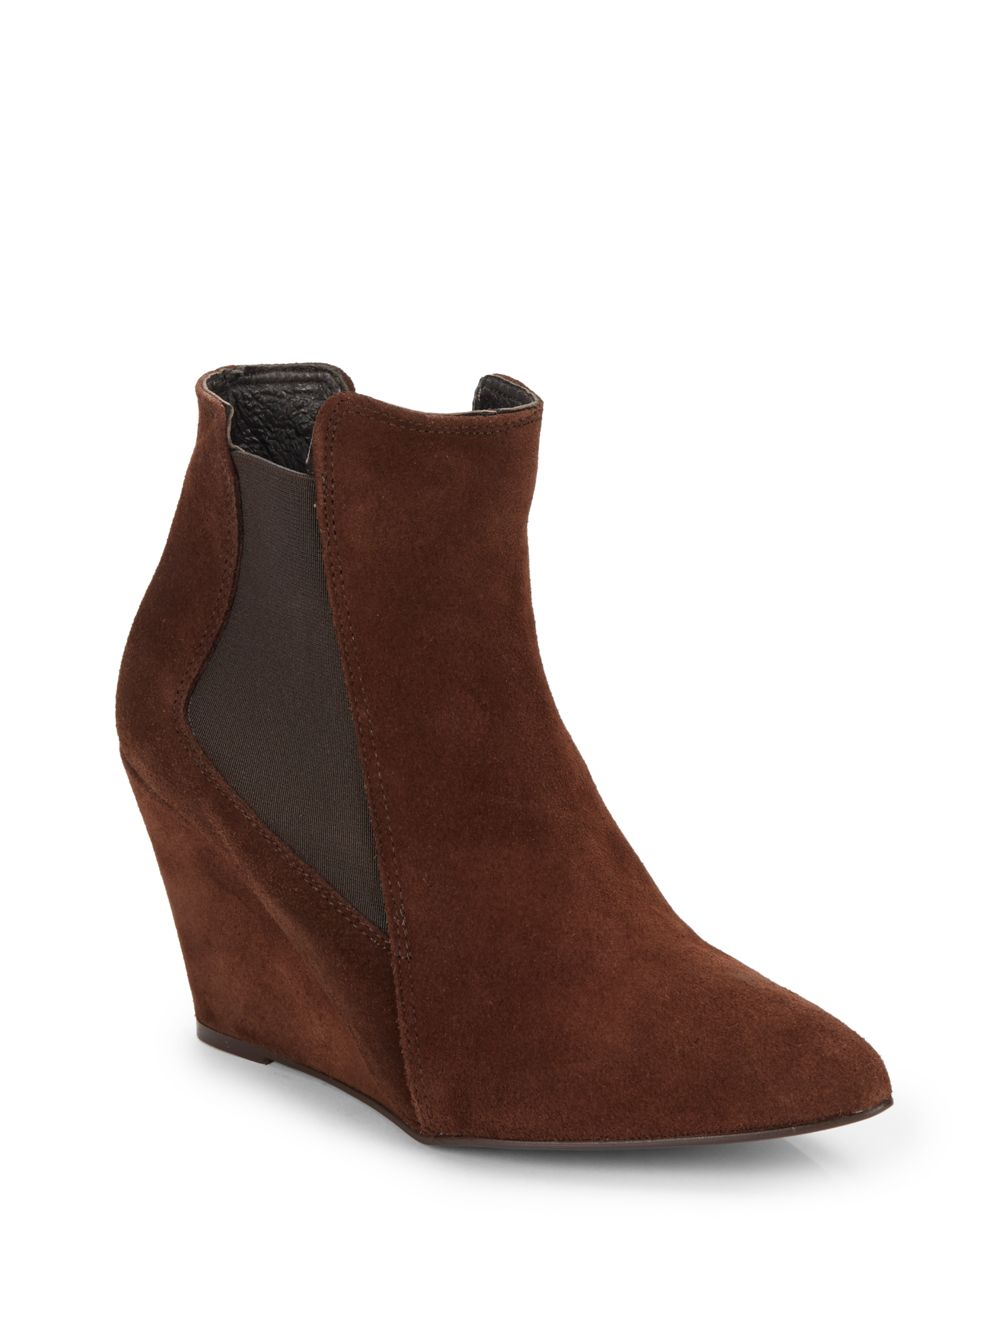 charles david edita suede wedge ankle boots in brown lyst